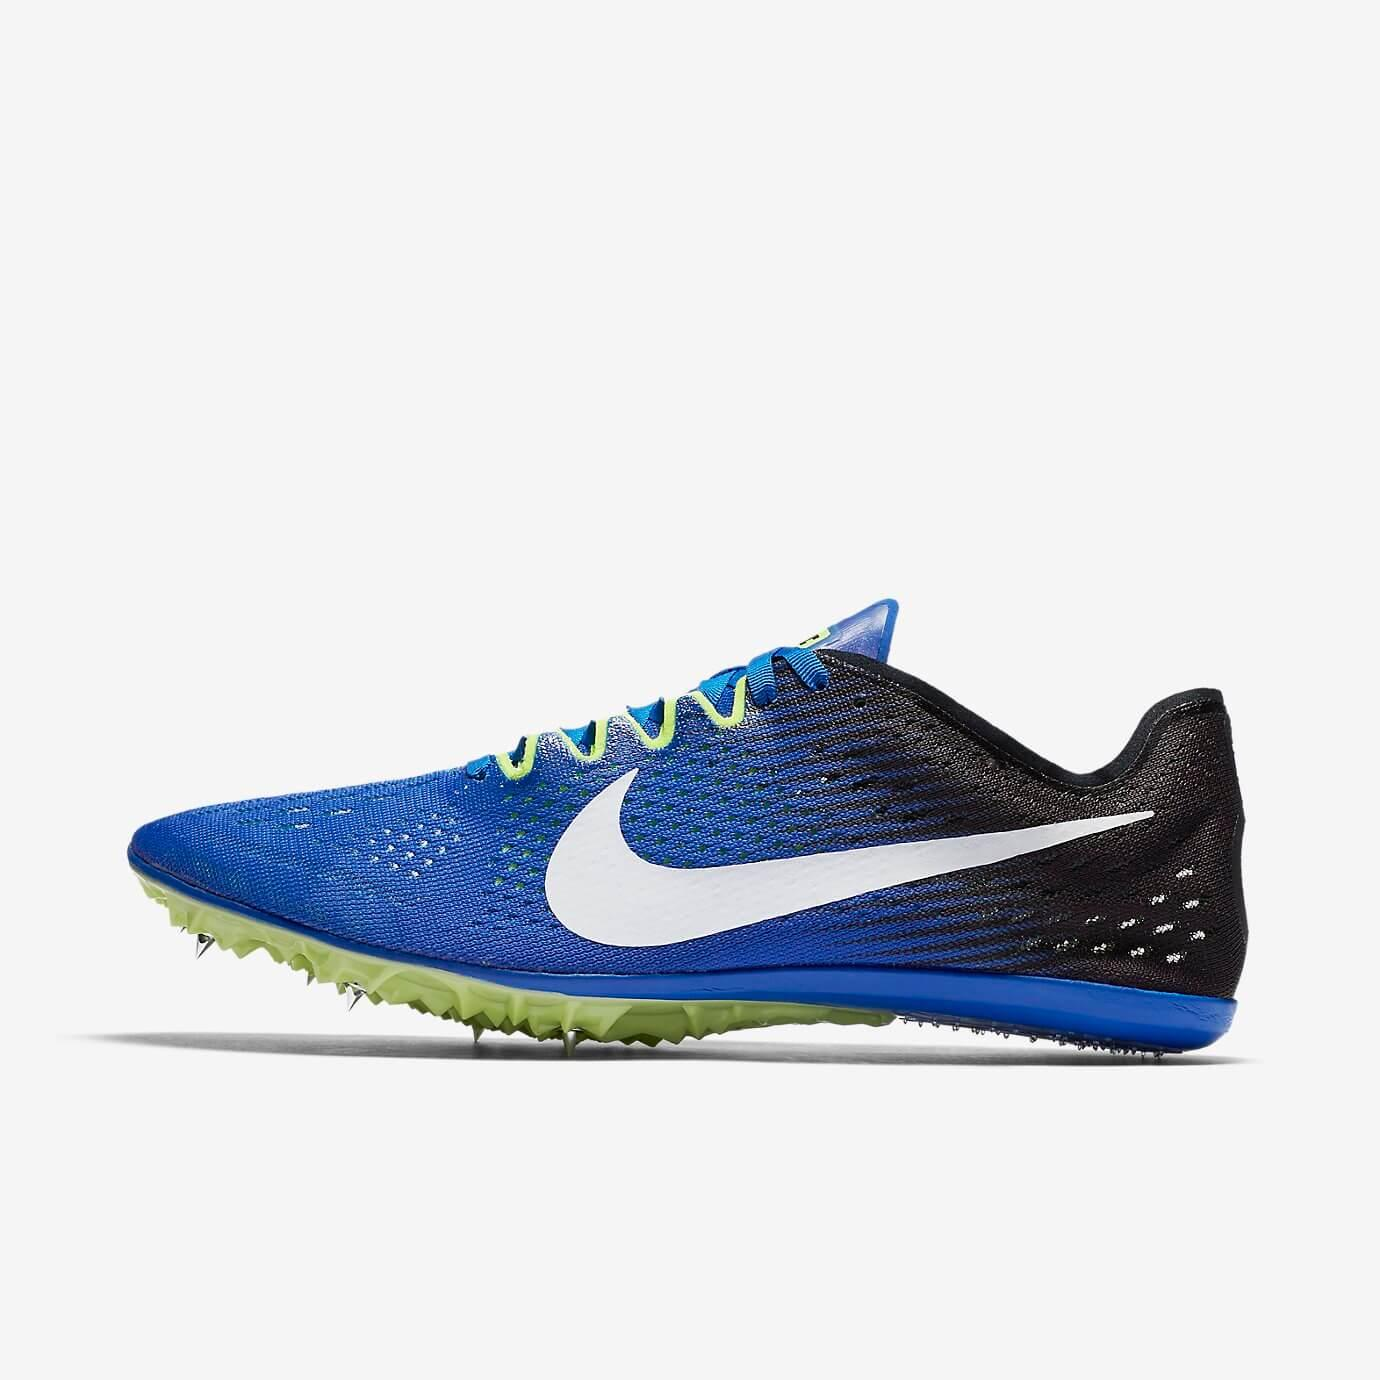 e704cf1f0b6e0 Nike Zoom Victory 3 Review - To Buy or Not in May 2019